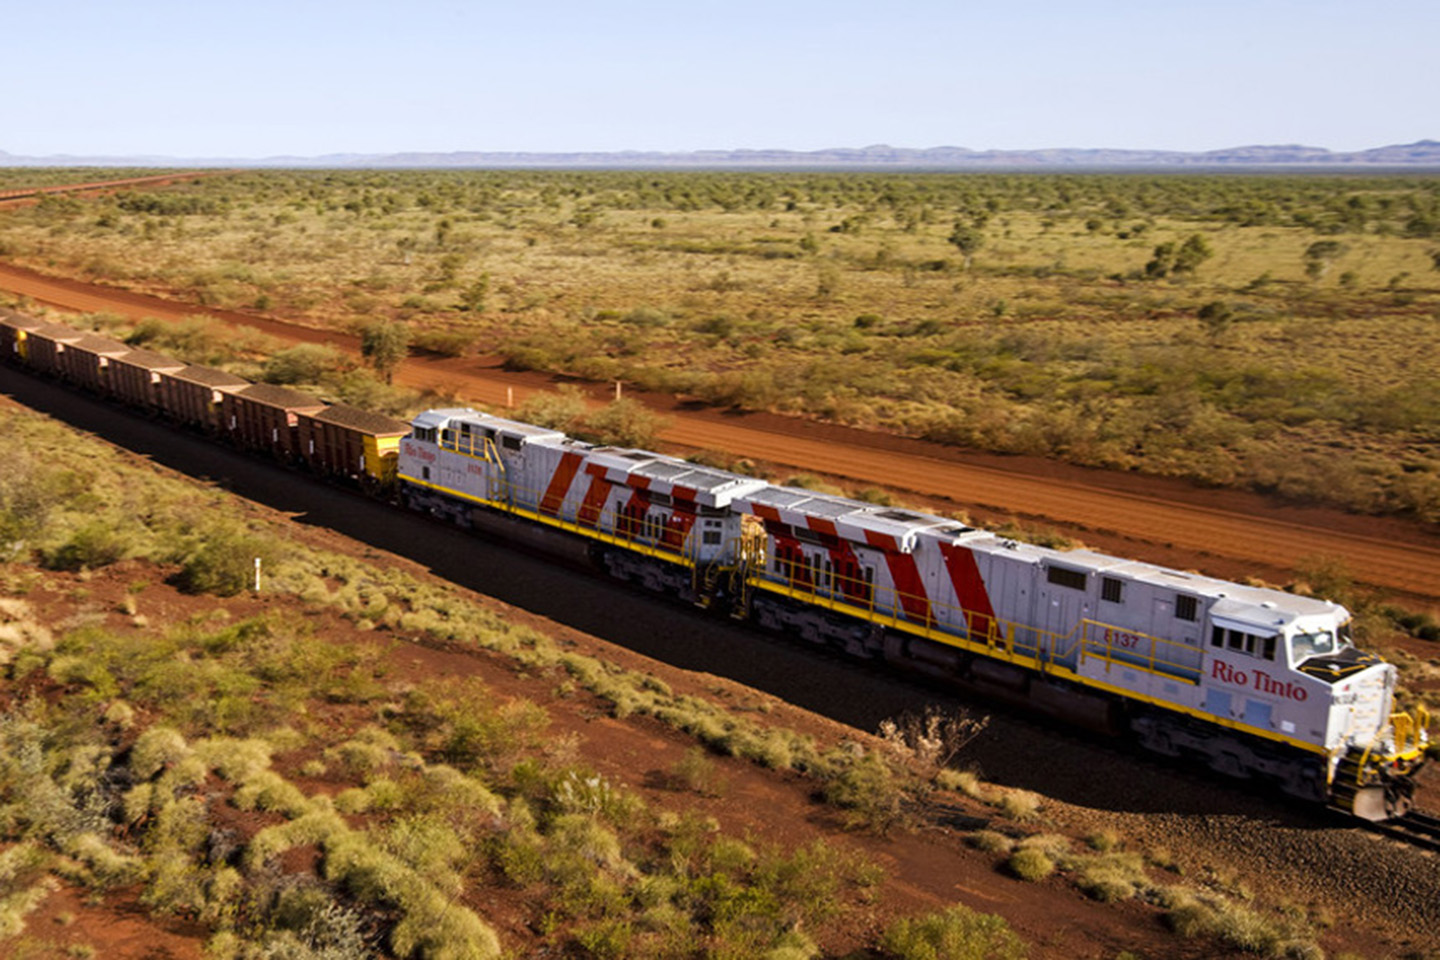 Rio Tinto Plc Granted accreditation for AutoHaul® project by rail regulator